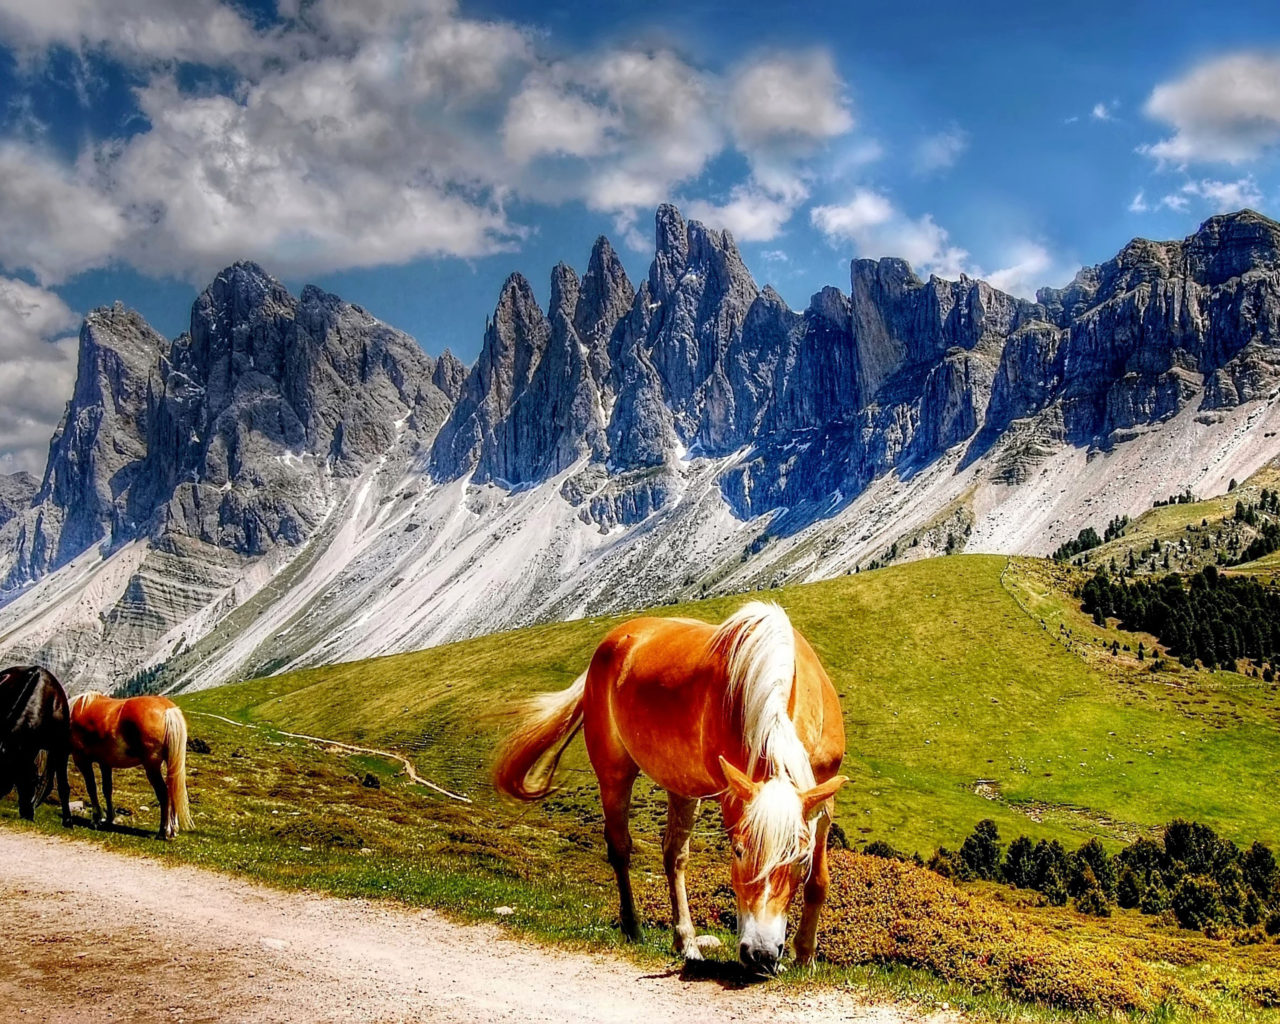 Fall Wallpaper Hd 1366x768 Horses In The Dolomites Mountains Italy South Tyrol